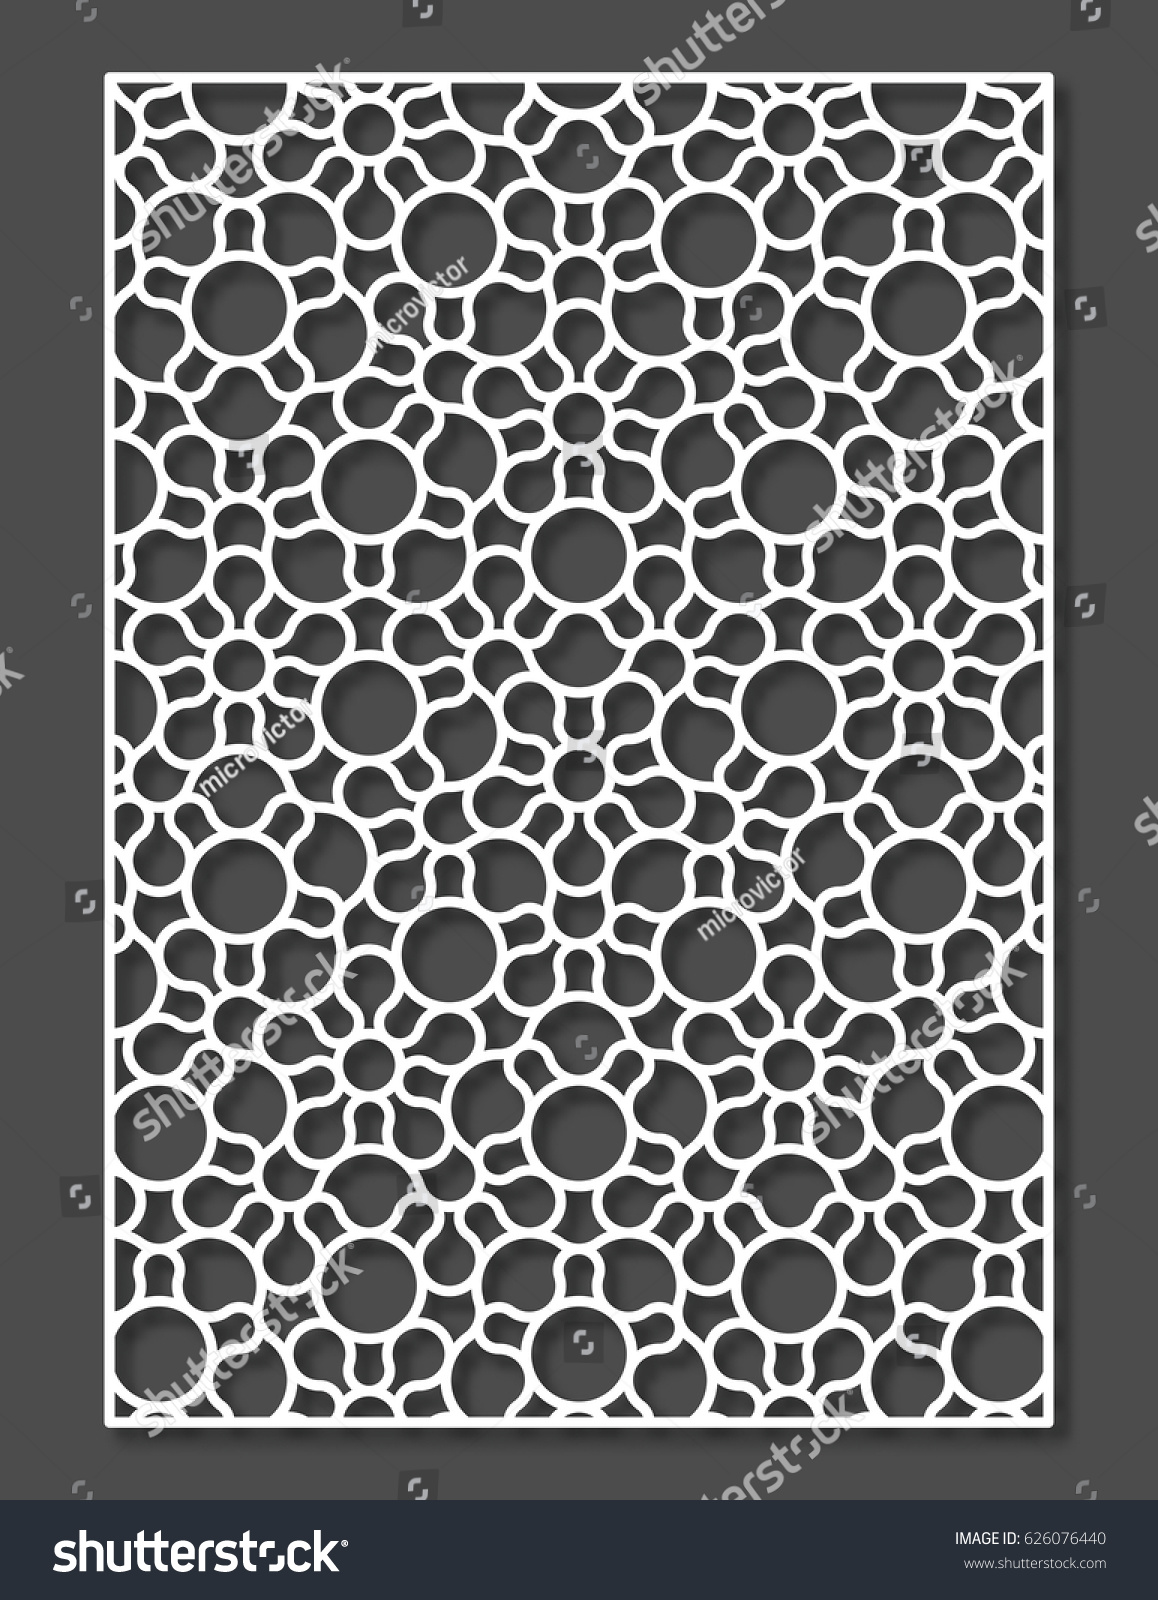 Penrose tiling stile laser cutting panel stock vector 626076440 penrose tiling stile laser cutting panel vector geometric ornament dailygadgetfo Image collections